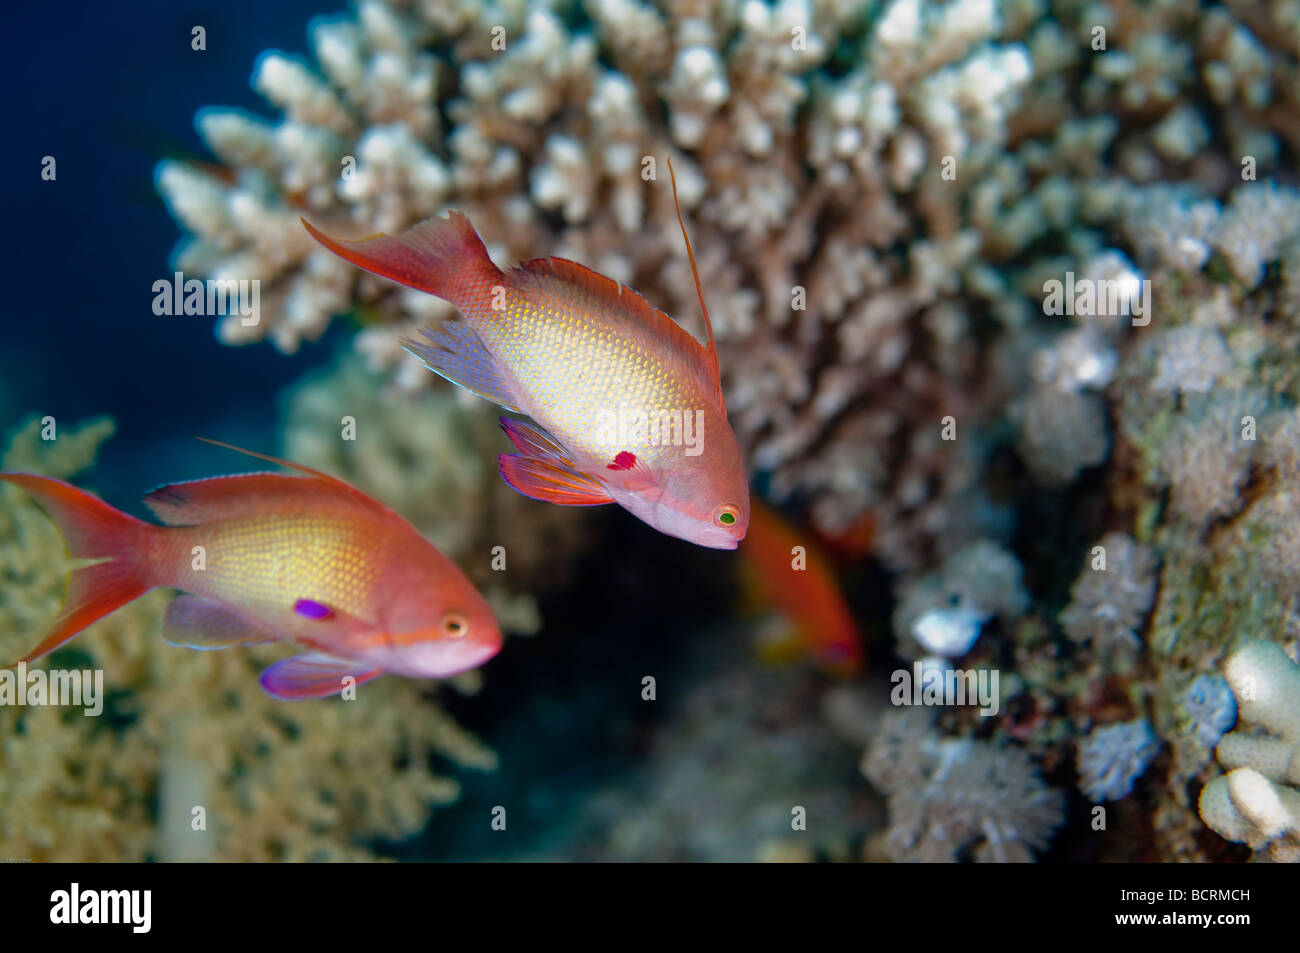 Two male Athias fish briefly hover over a coral reef. - Stock Image